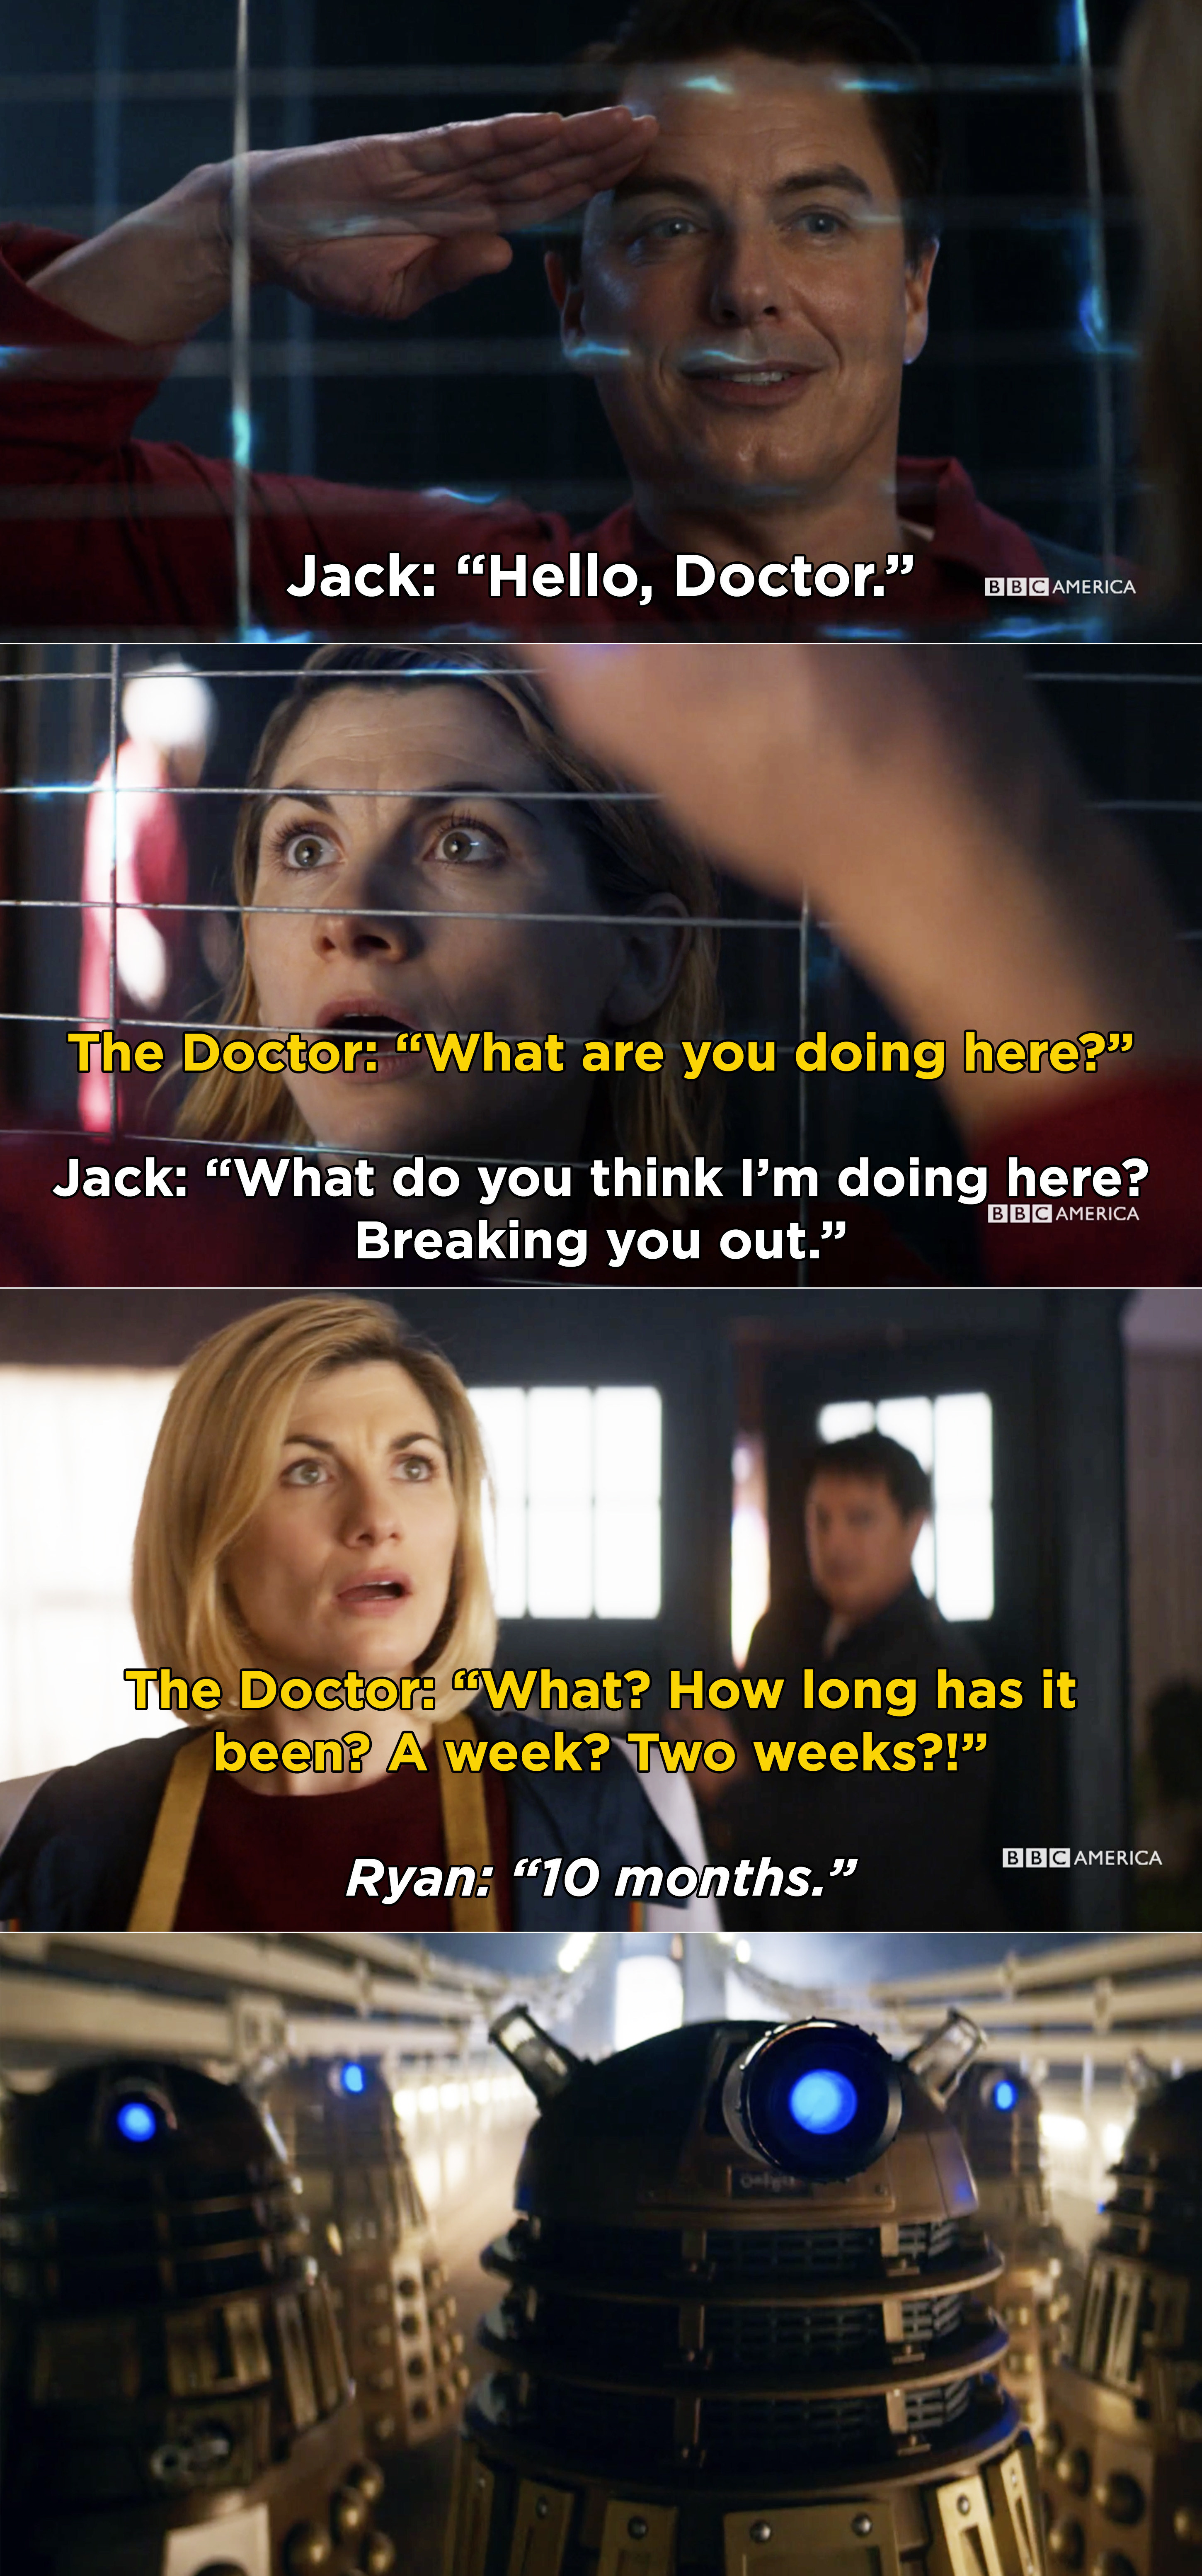 Jack telling the Doctor he's here to rescue her and then Ryan breaking the news that she's been gone 10 months